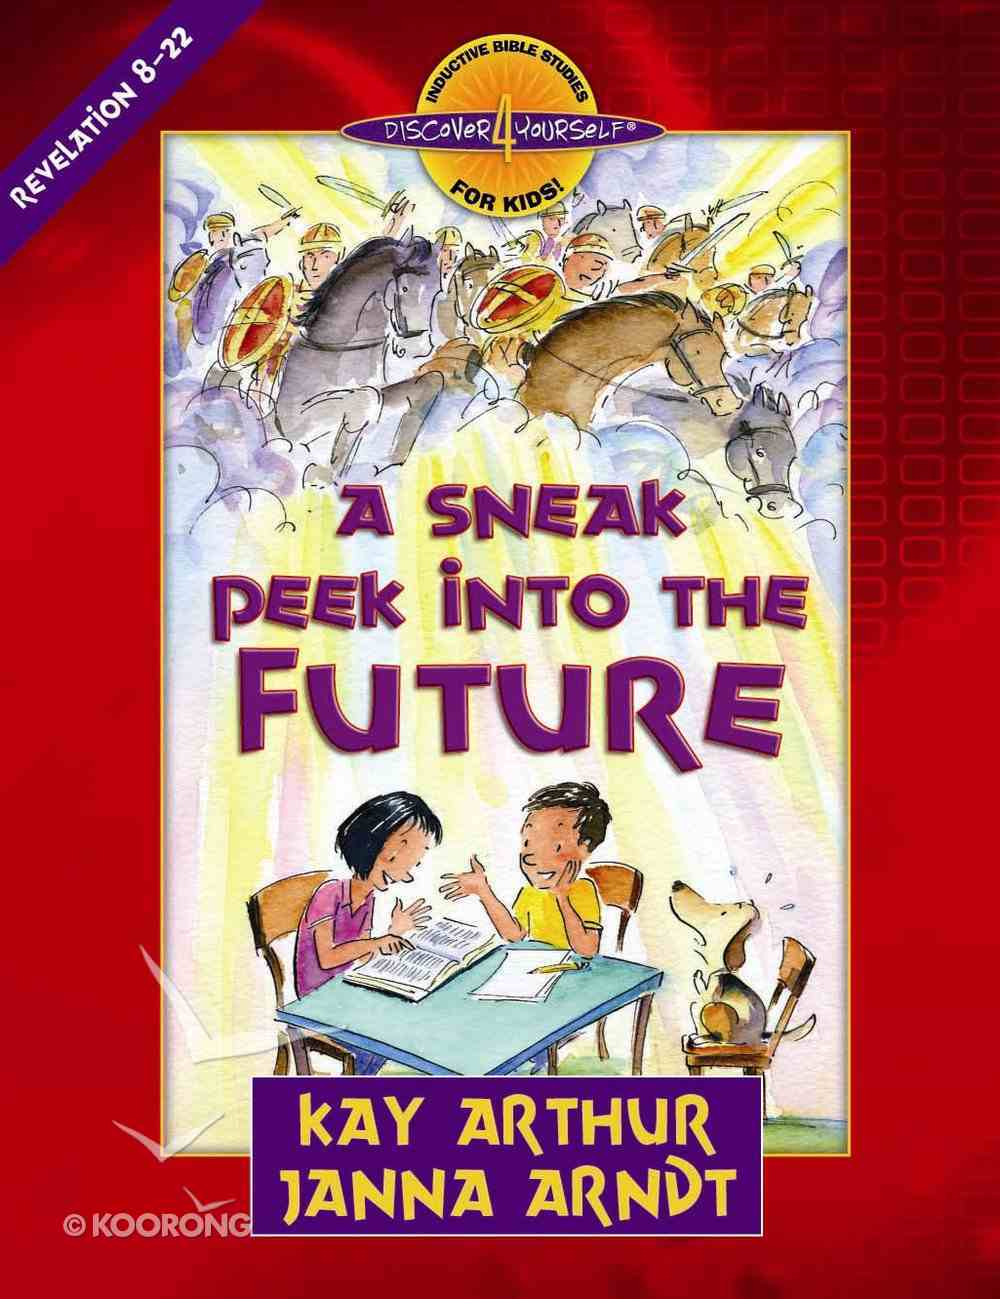 Sneak Peek Into the Future, a (Discover 4 Yourself Inductive Bible Studies For Kids) (Revelation 8-22) (Discover For Yourself Bible Studies Series) eBook